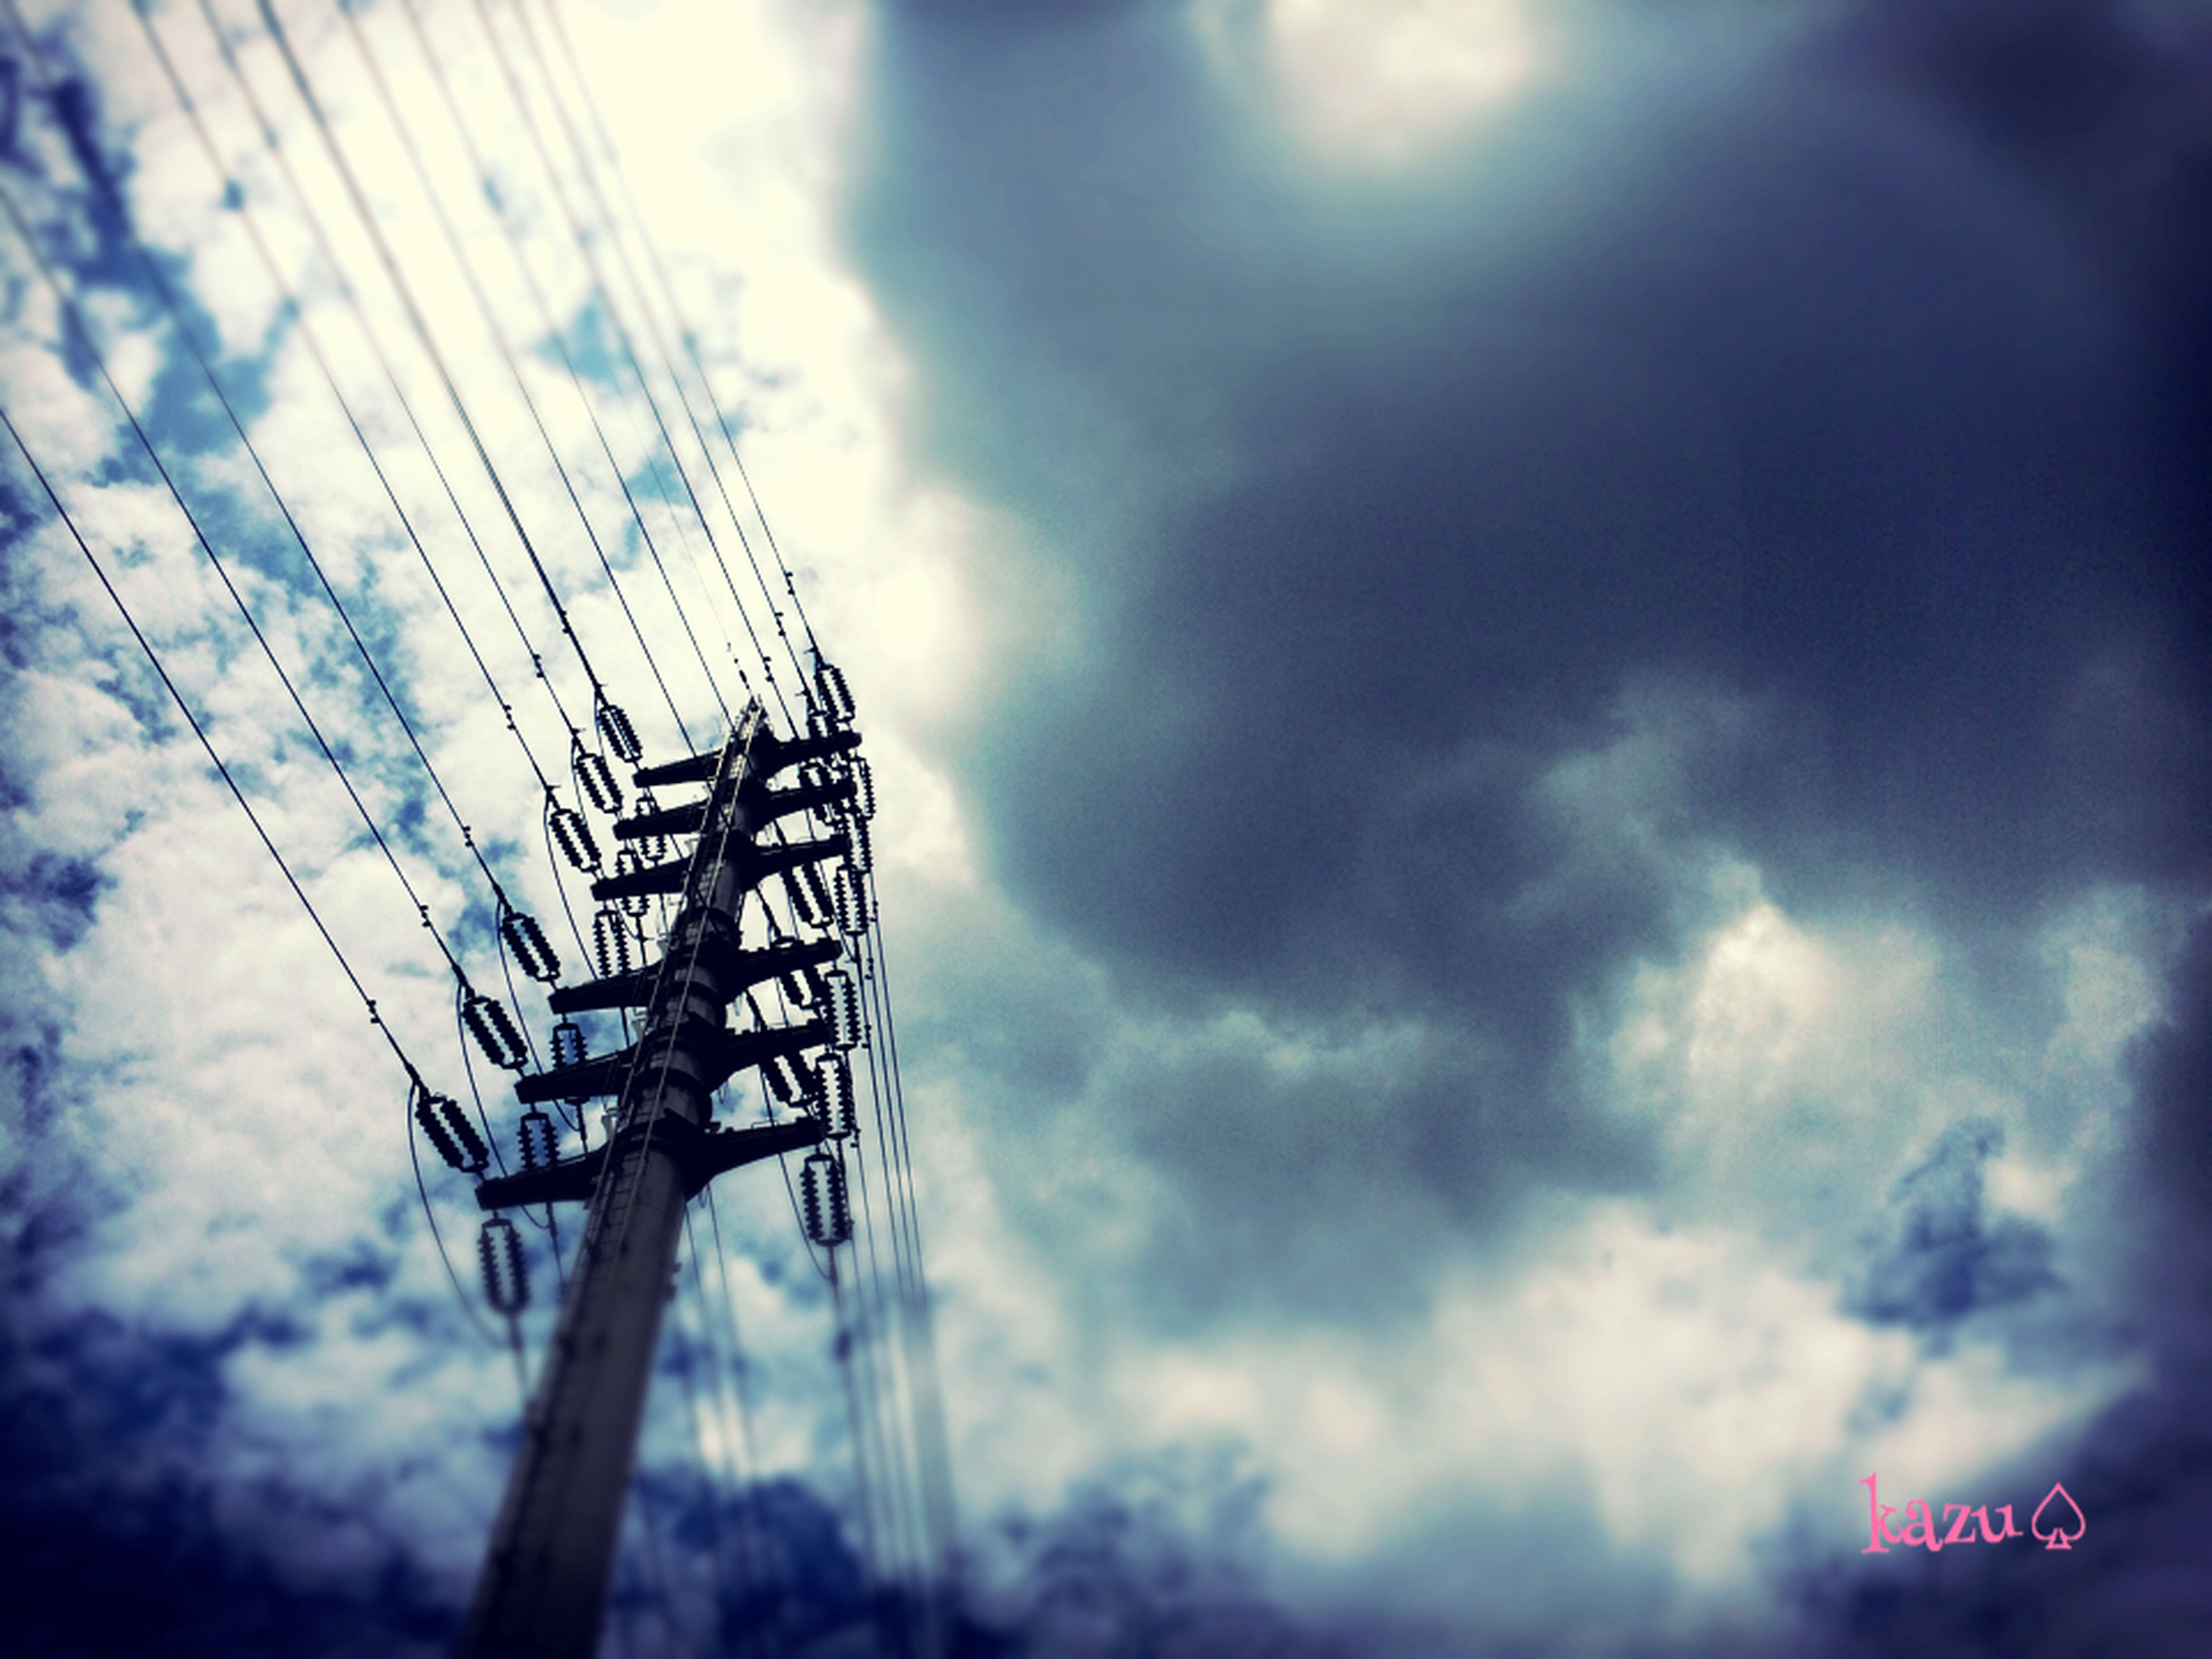 low angle view, sky, cloud - sky, cloudy, communication, power line, electricity, electricity pylon, cable, text, power supply, connection, cloud, western script, pole, no people, technology, weather, street light, lighting equipment